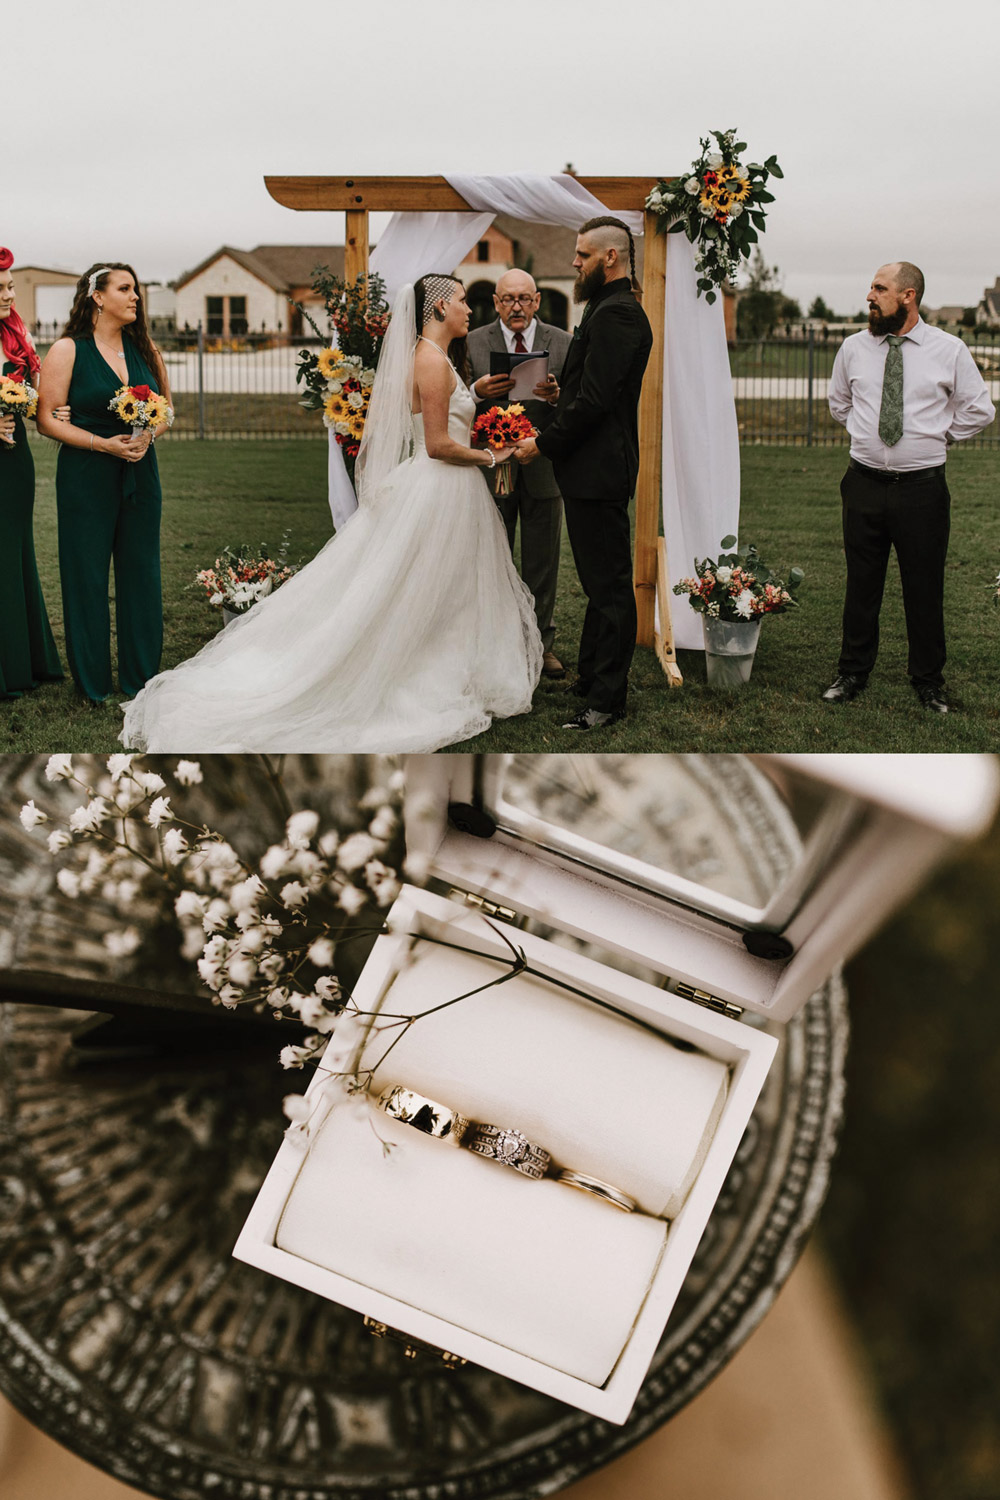 sweet little details to the coolest edgy backyard elopement